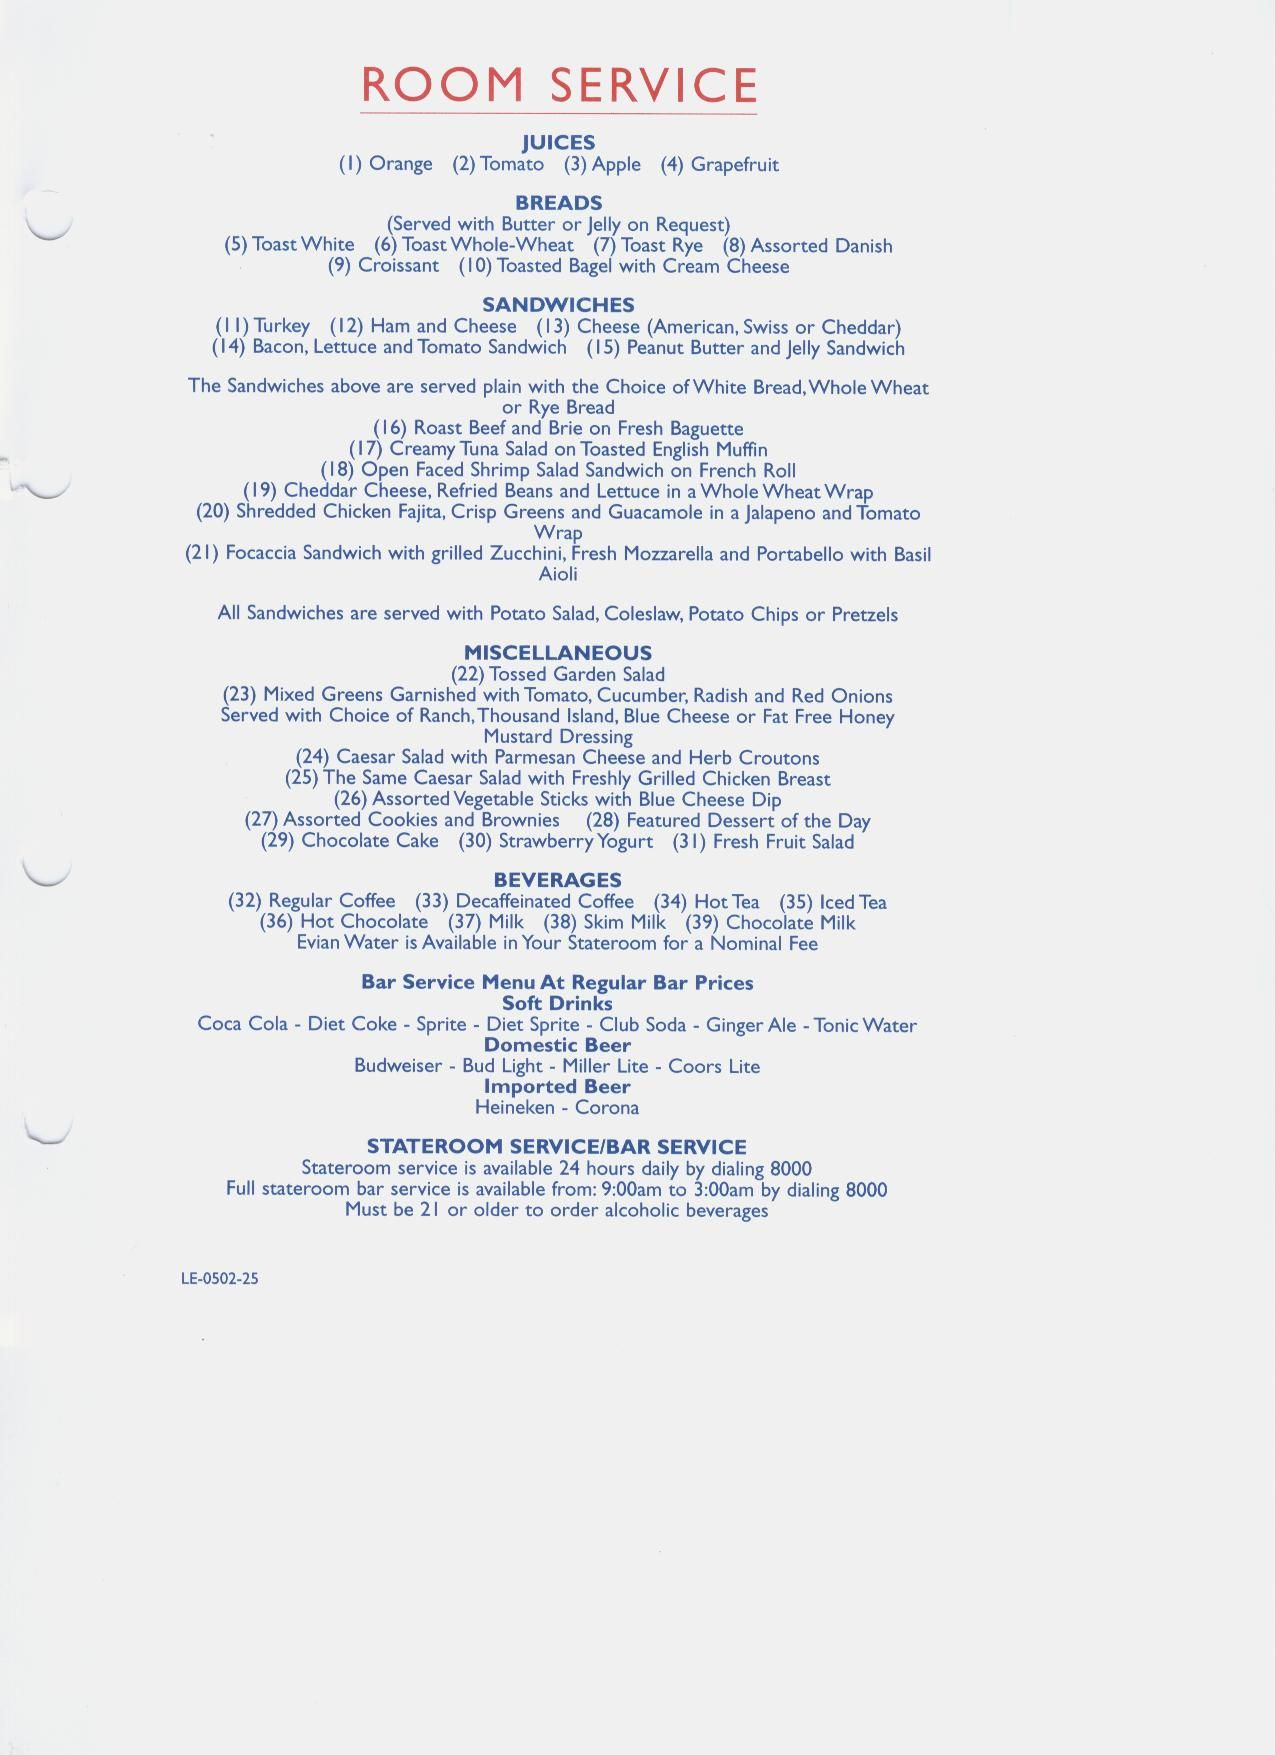 Carnival Victory Itinerary  Carnival Victory Itinerary 20132014 Fair Carnival Cruise Dining Room Menu Decorating Inspiration